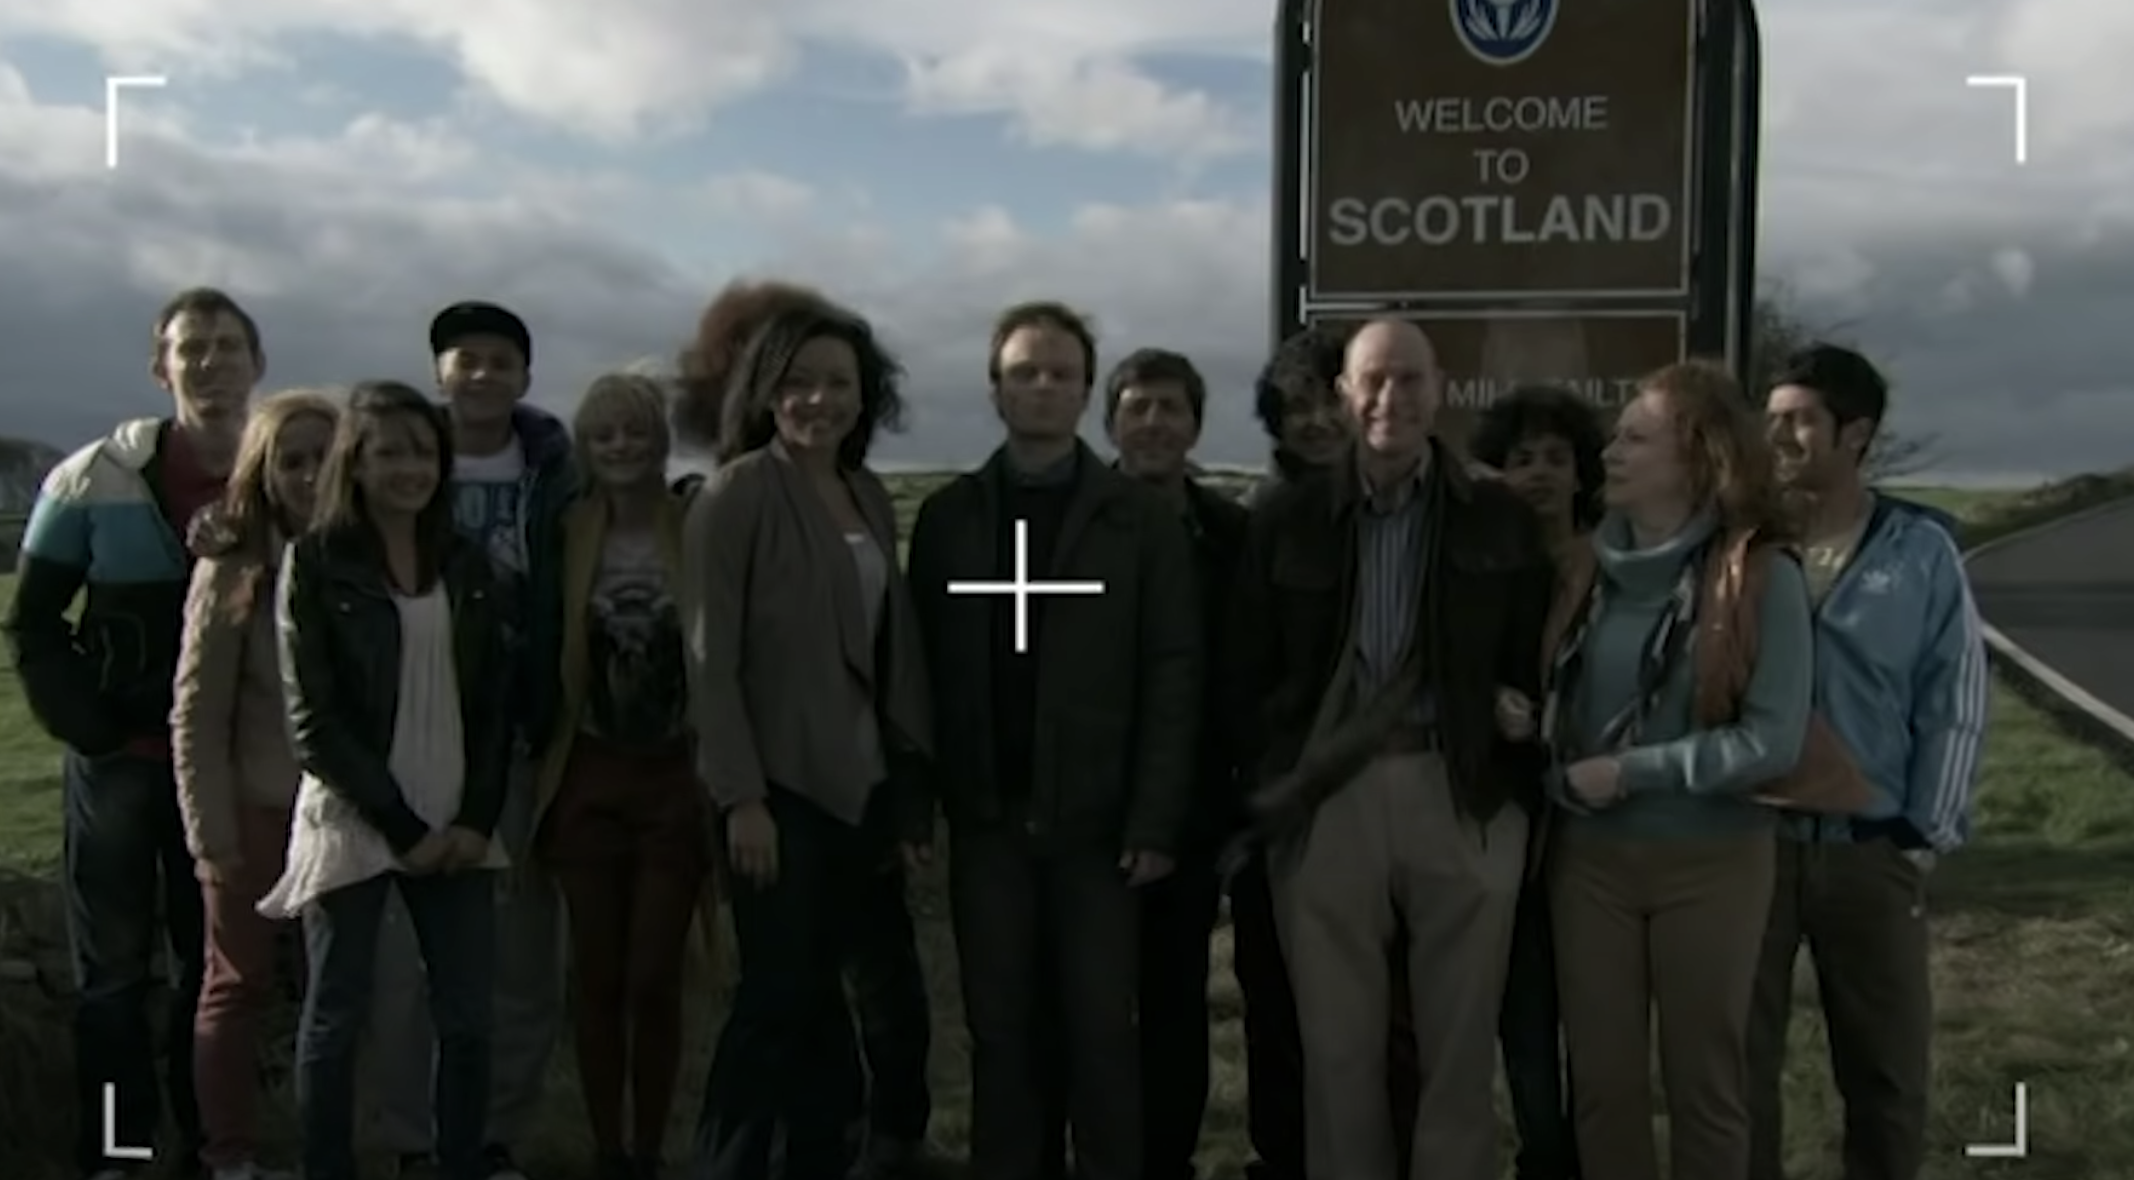 A group photo of the children and students in front of the 'Welcome to Scotland' sign